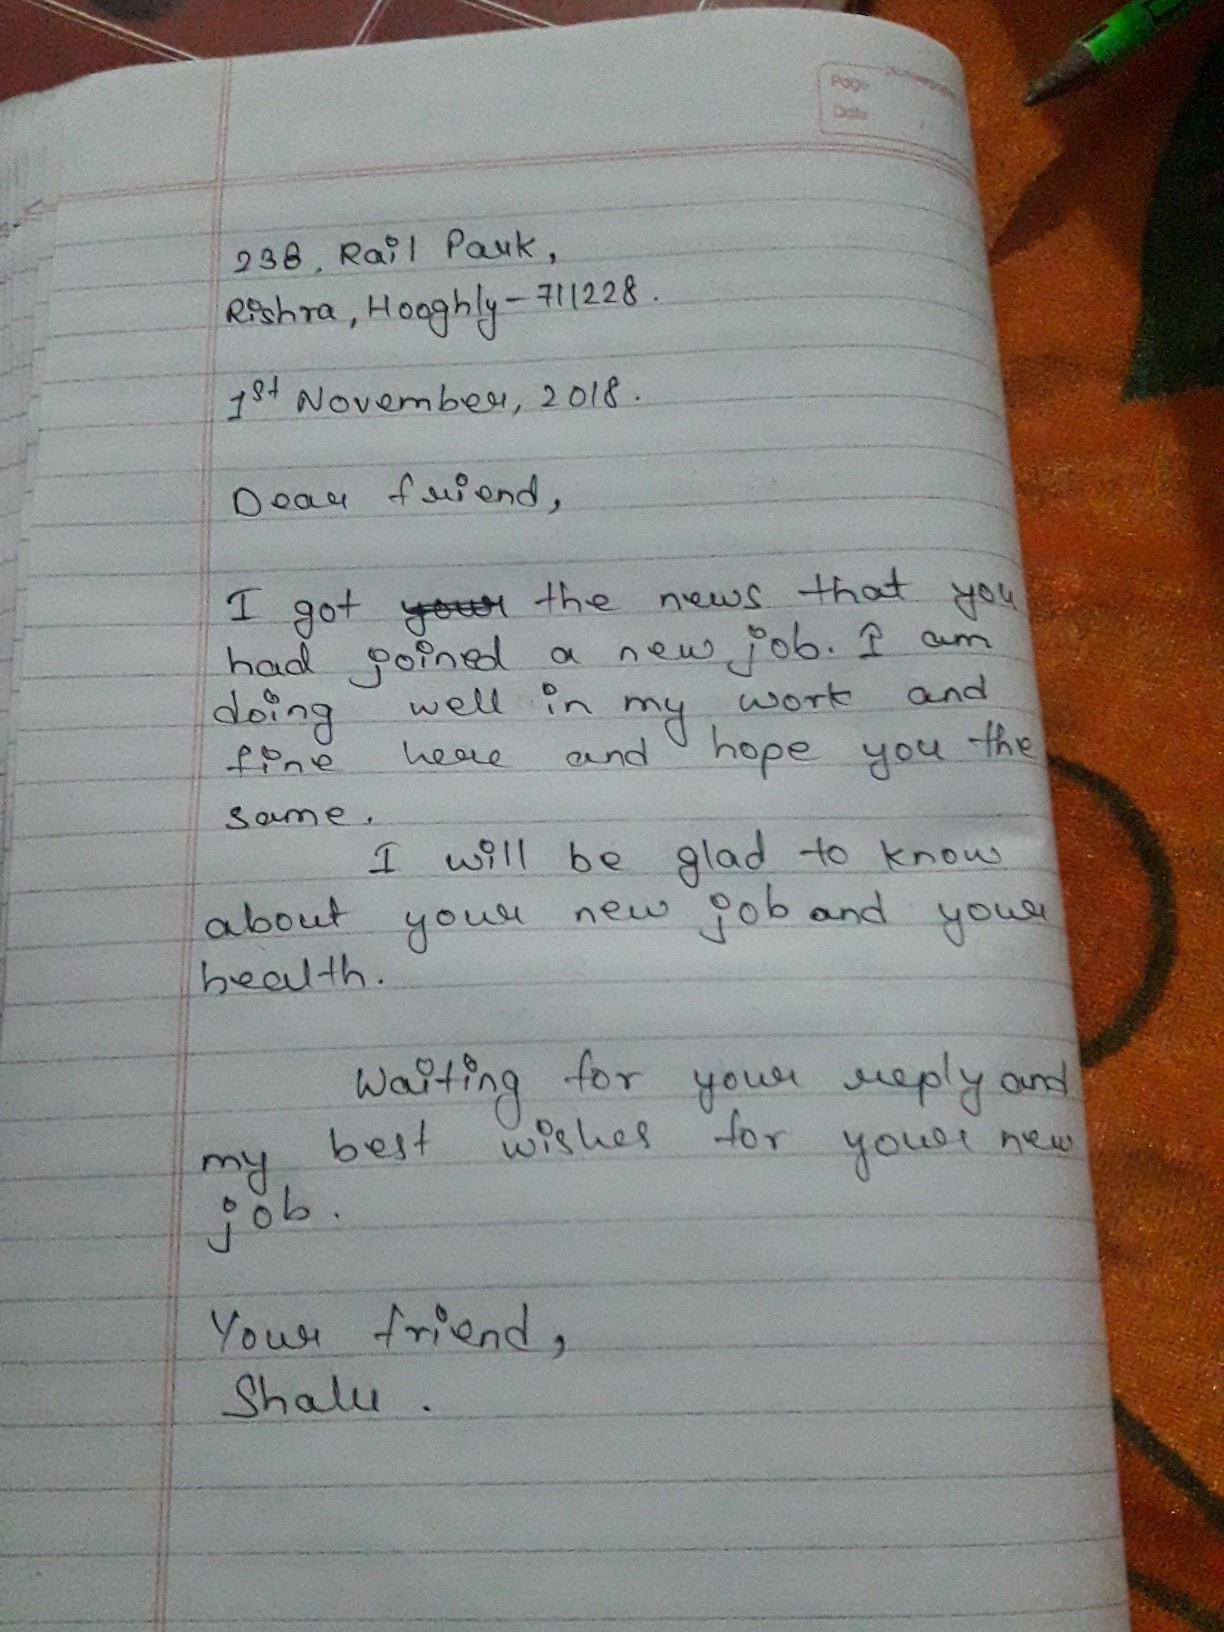 Write A Letter To Your Friend Asking Her About The New School She Joined Brainly In